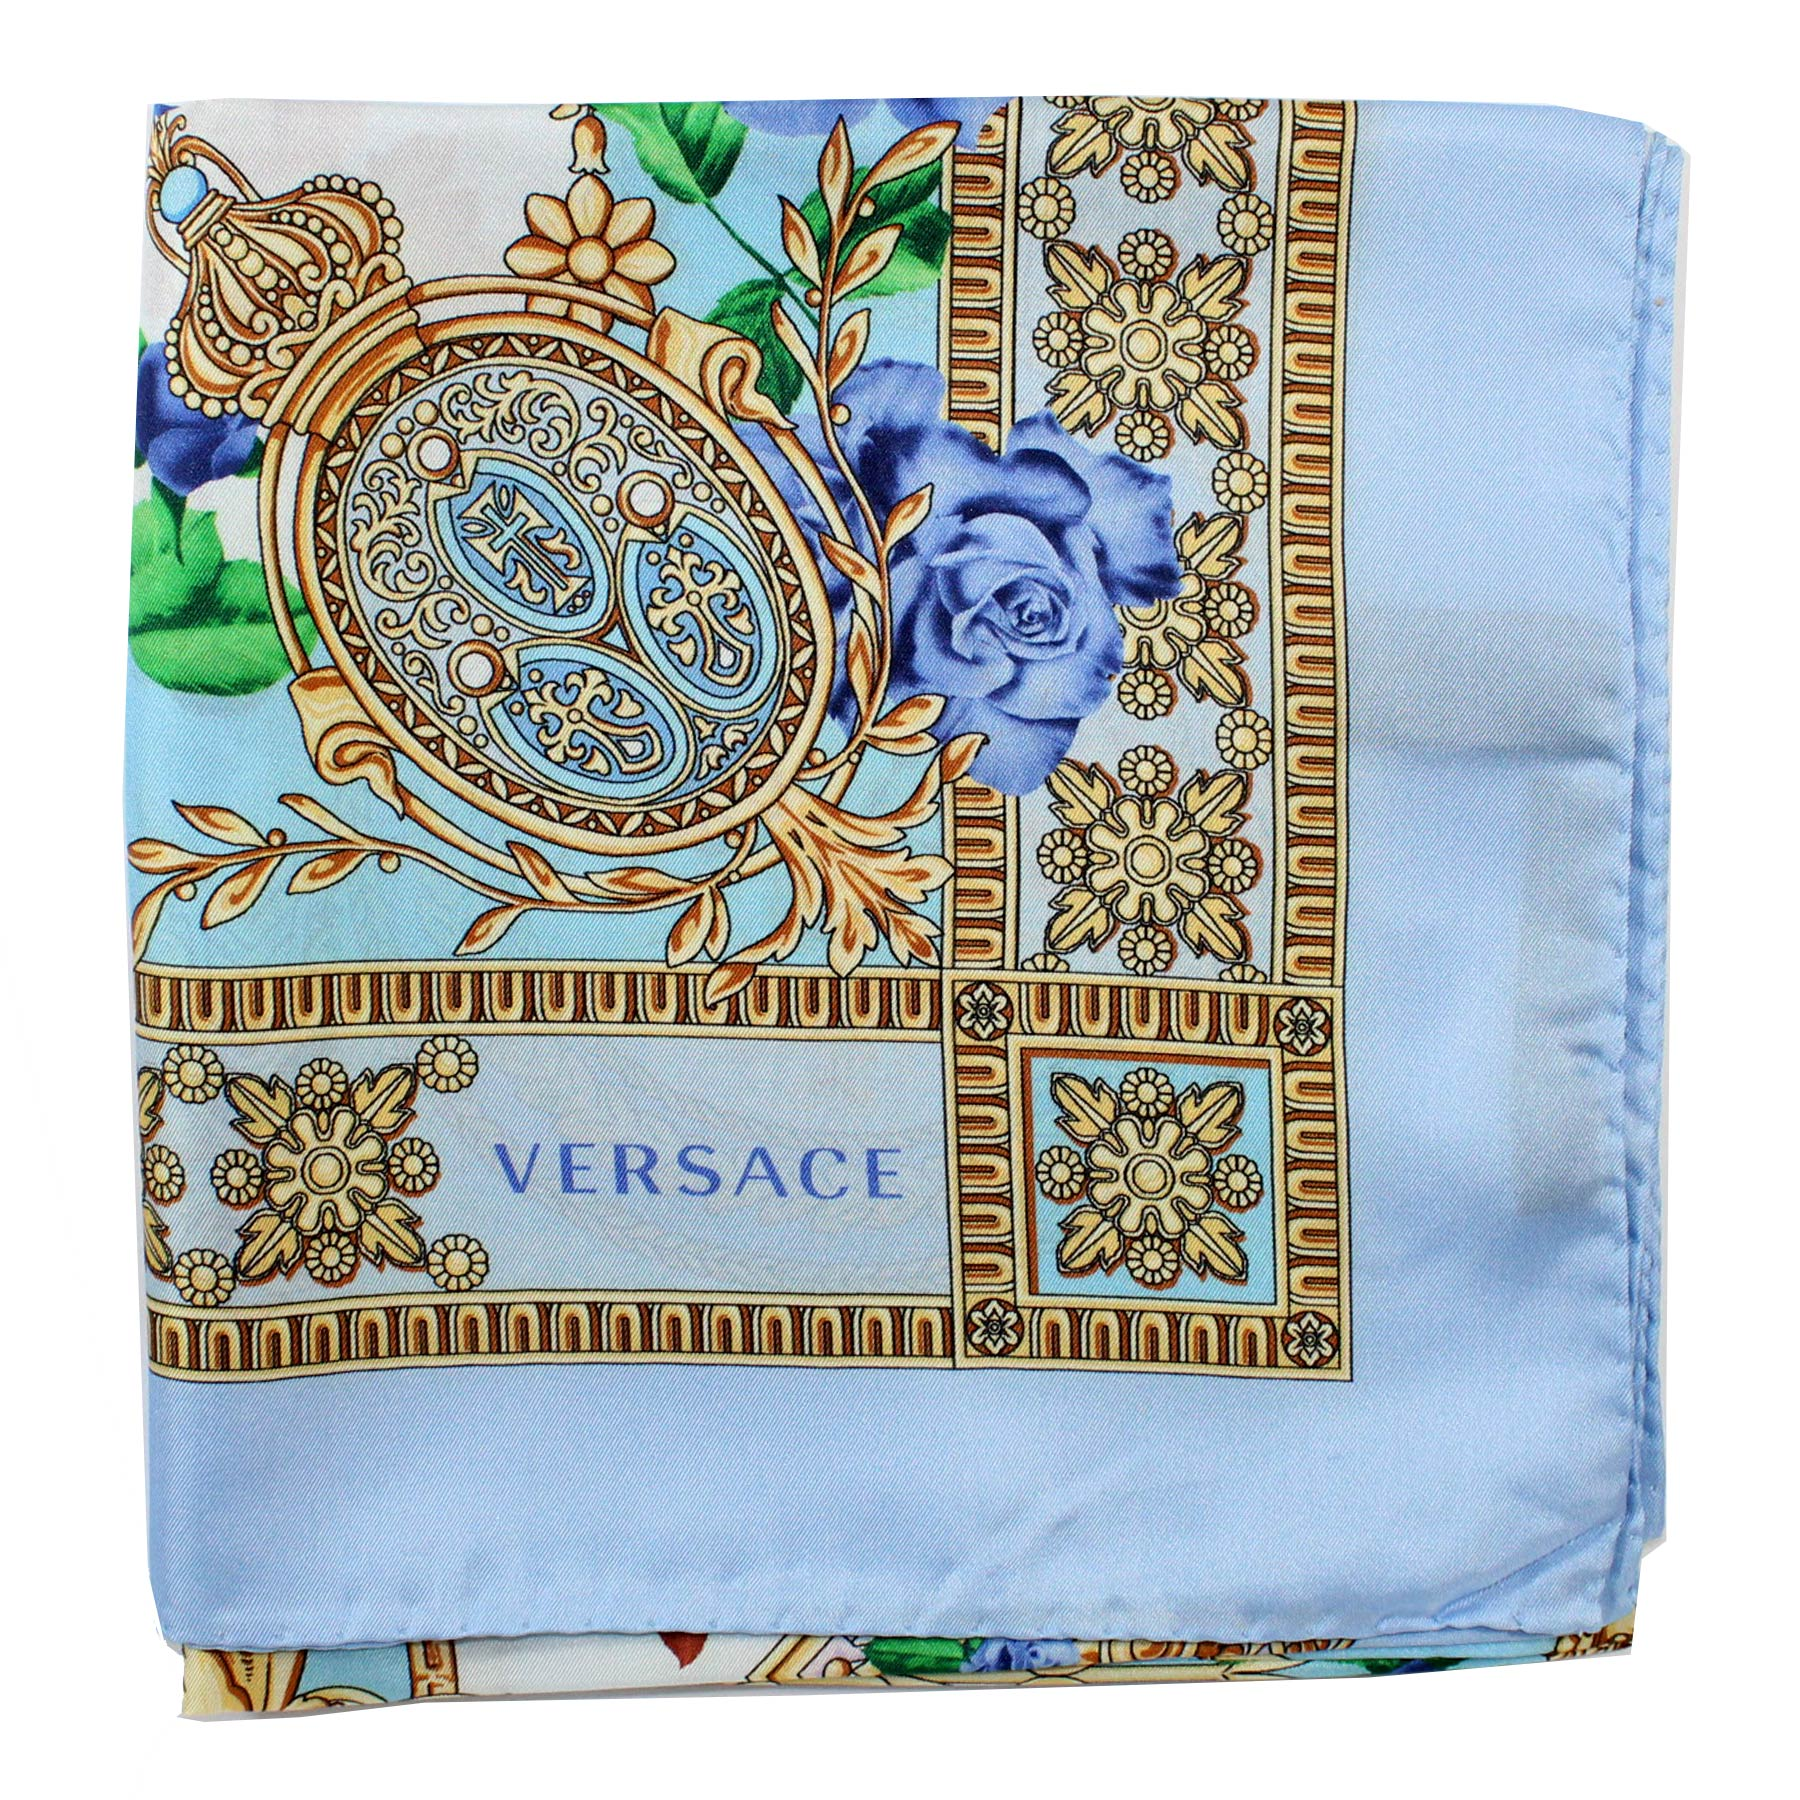 Versace Silk Scarf Blue Floral  Baroque - Large Square Scarf